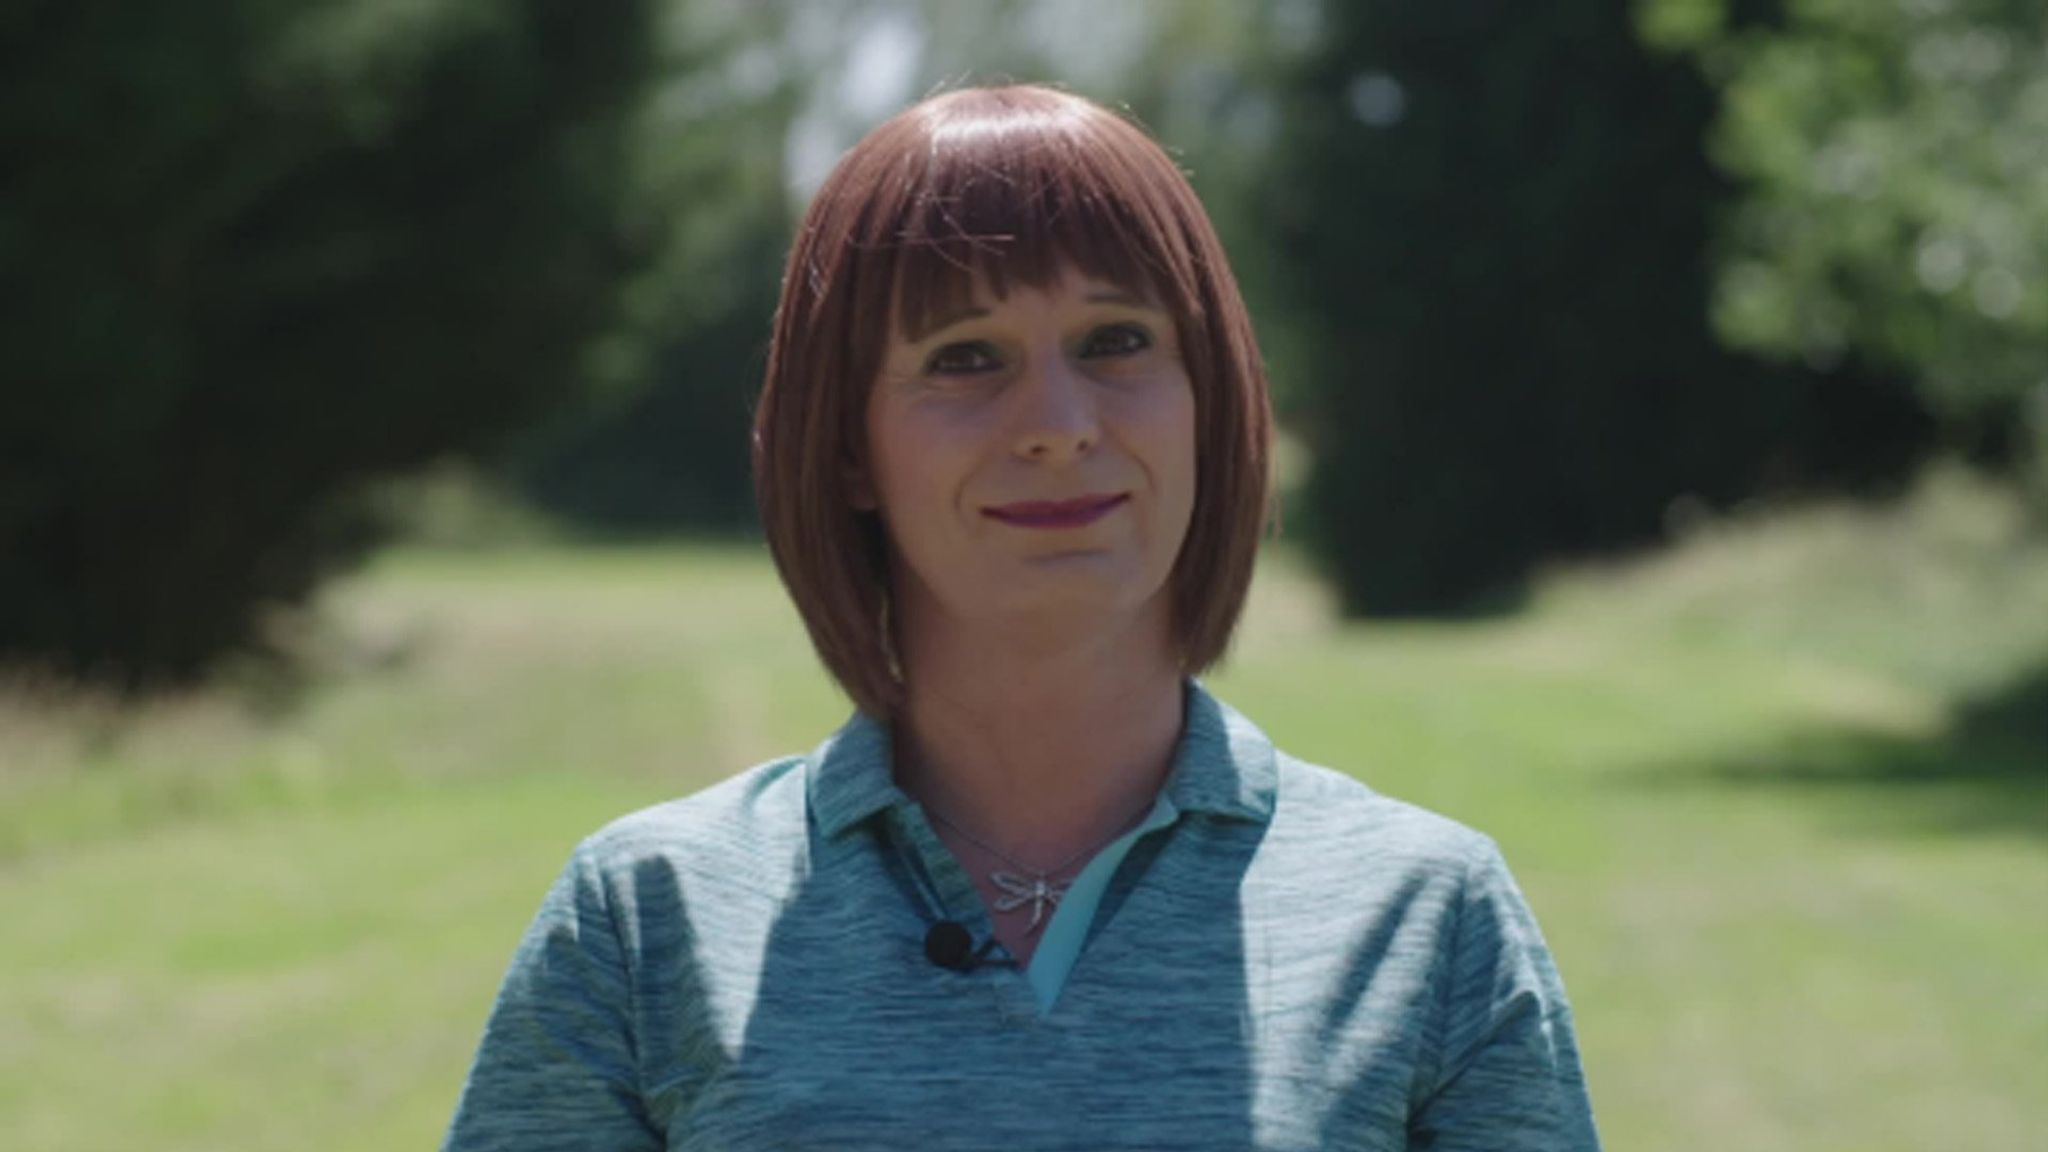 Alison Perkins on being a transgender woman working in golf